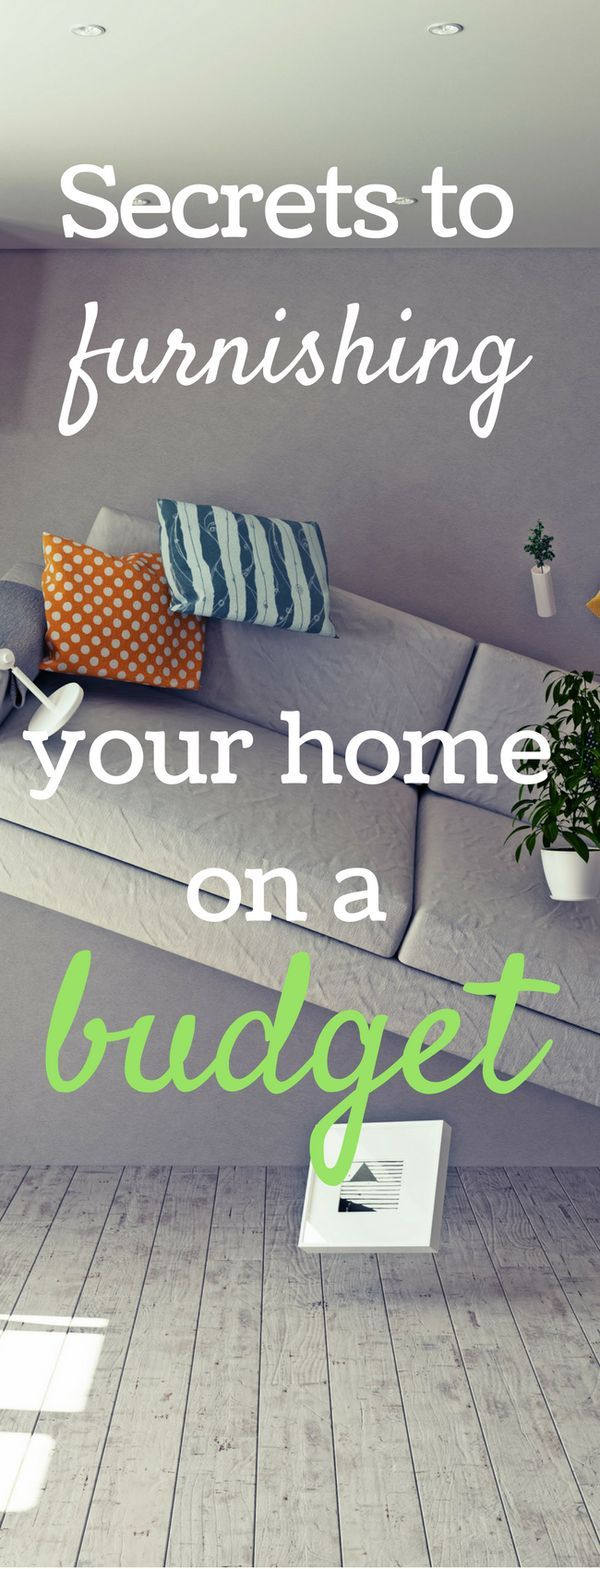 Secrets to Furnishing your home on a budget   Budgeting, House and ...